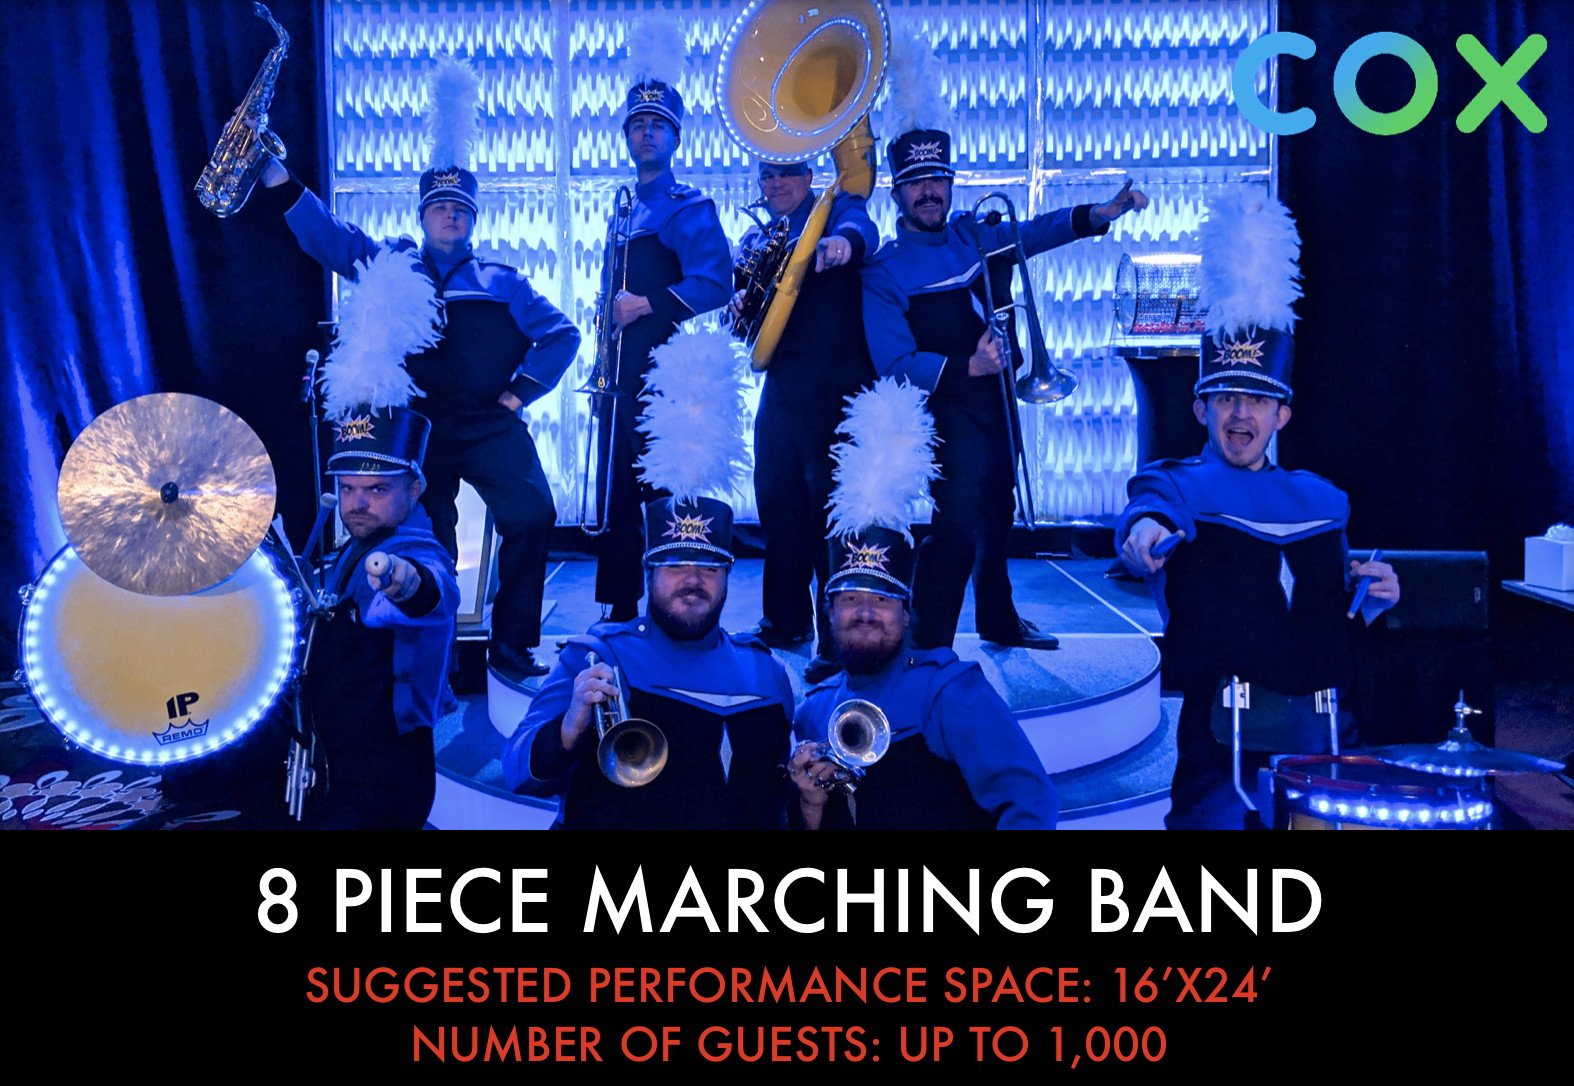 8 piece Marching Band